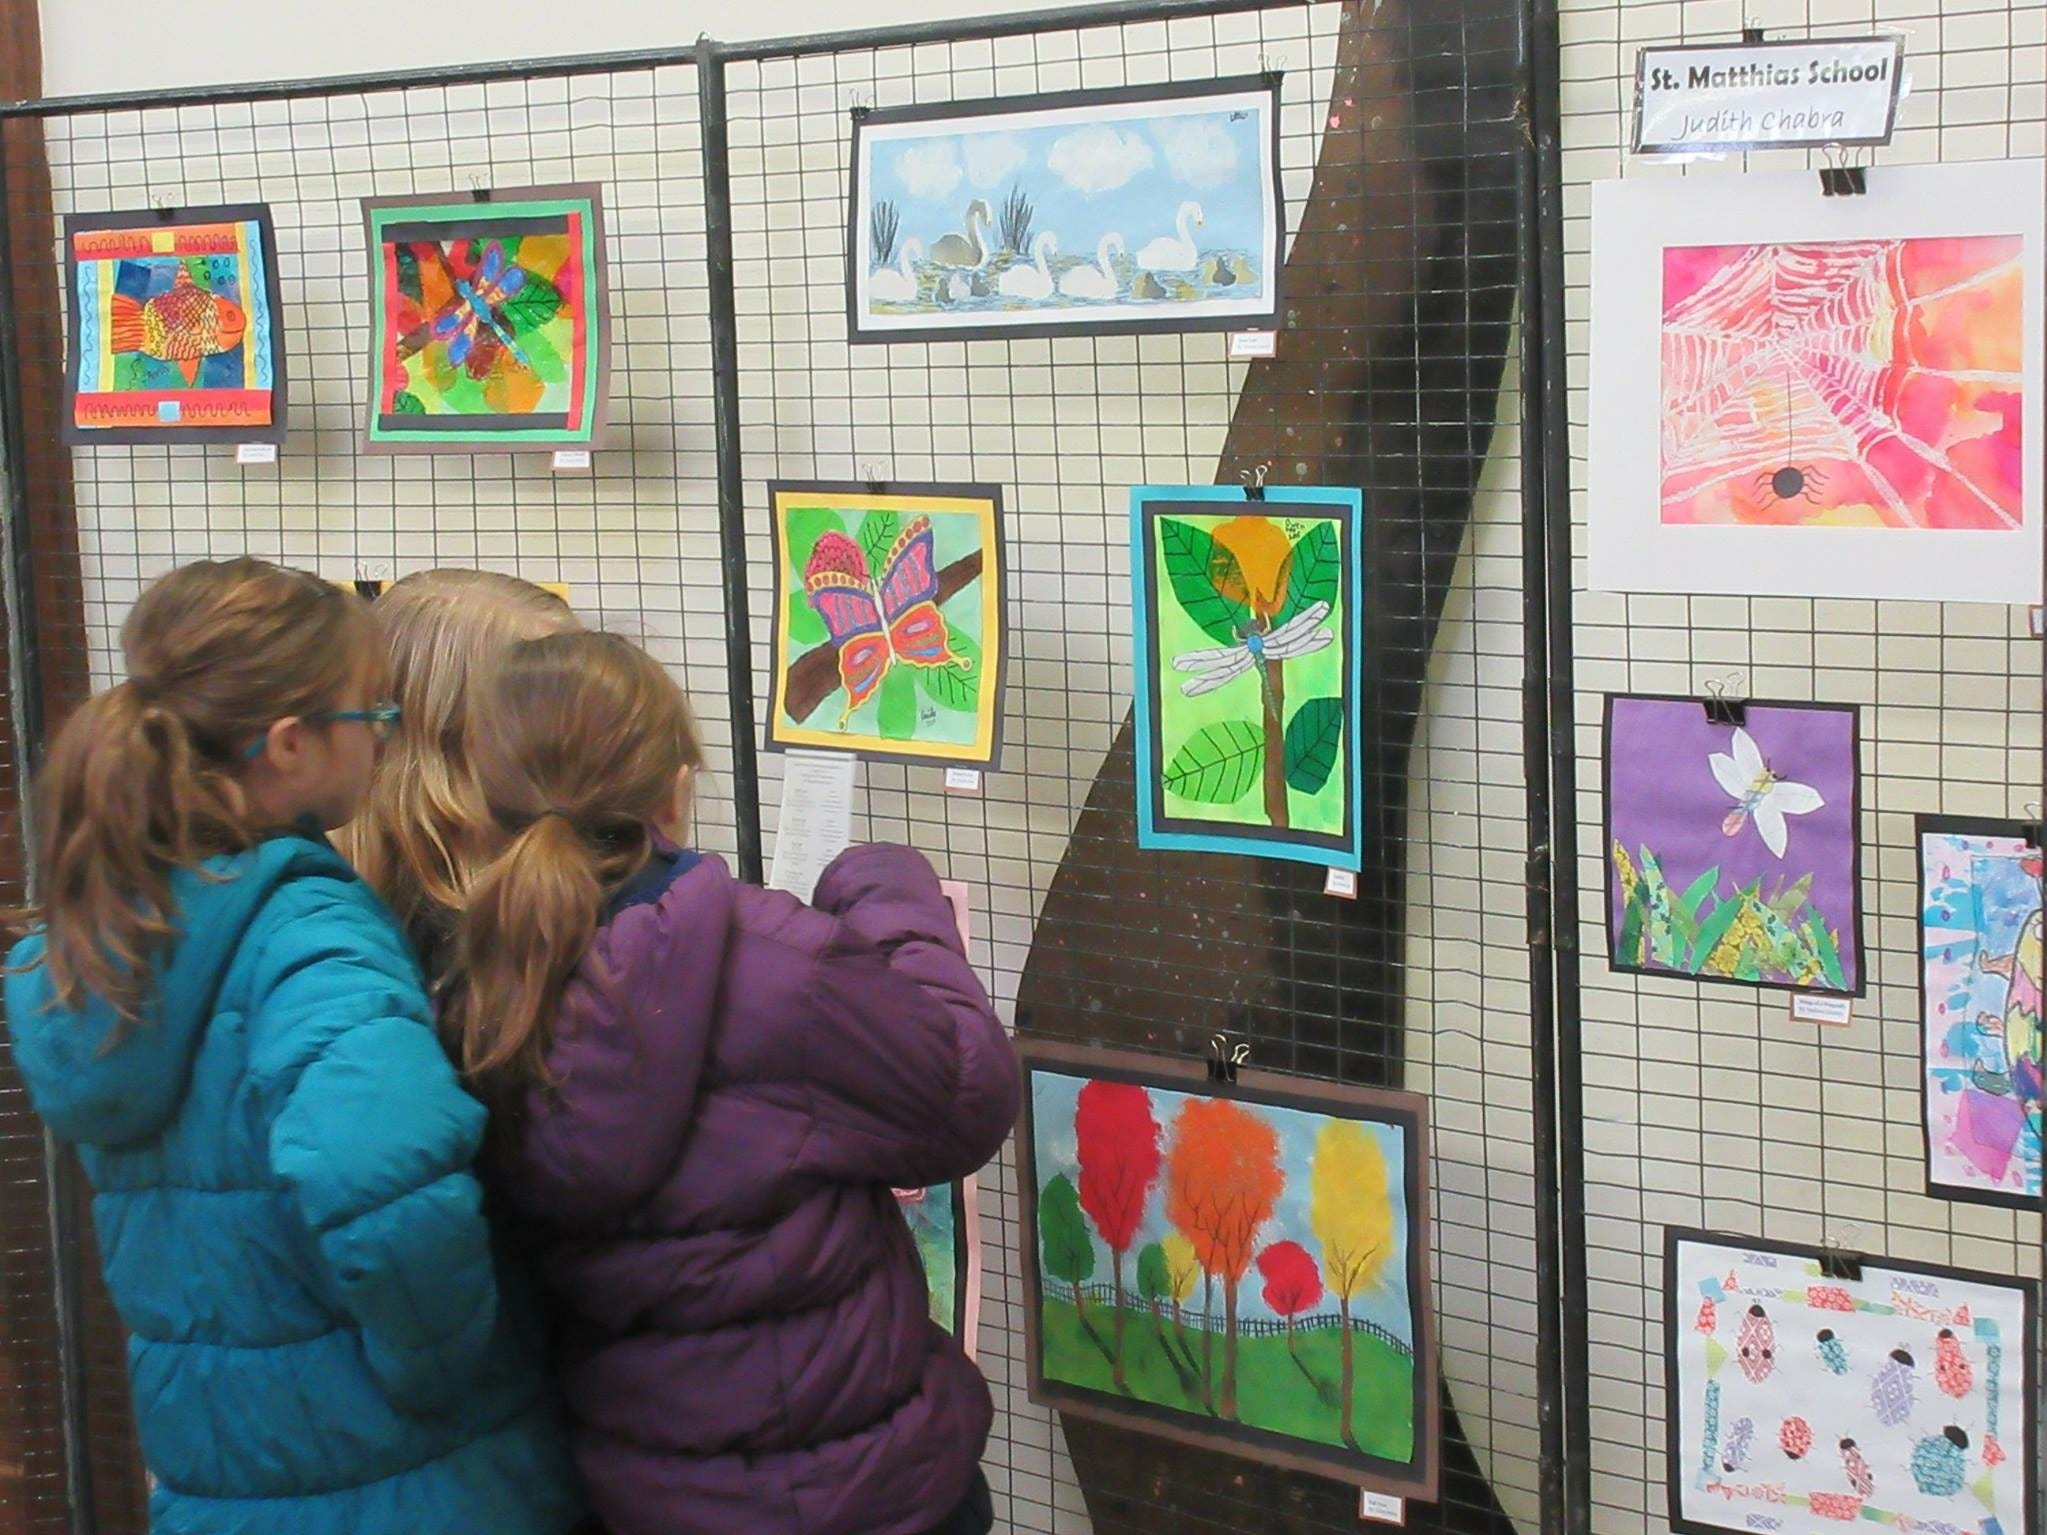 Children examine the works of other young artists at the Children's Environmental Art Show, which will be held at the Environmental Education Center from Monday, Jan. 7, to Sunday, Feb. 3.